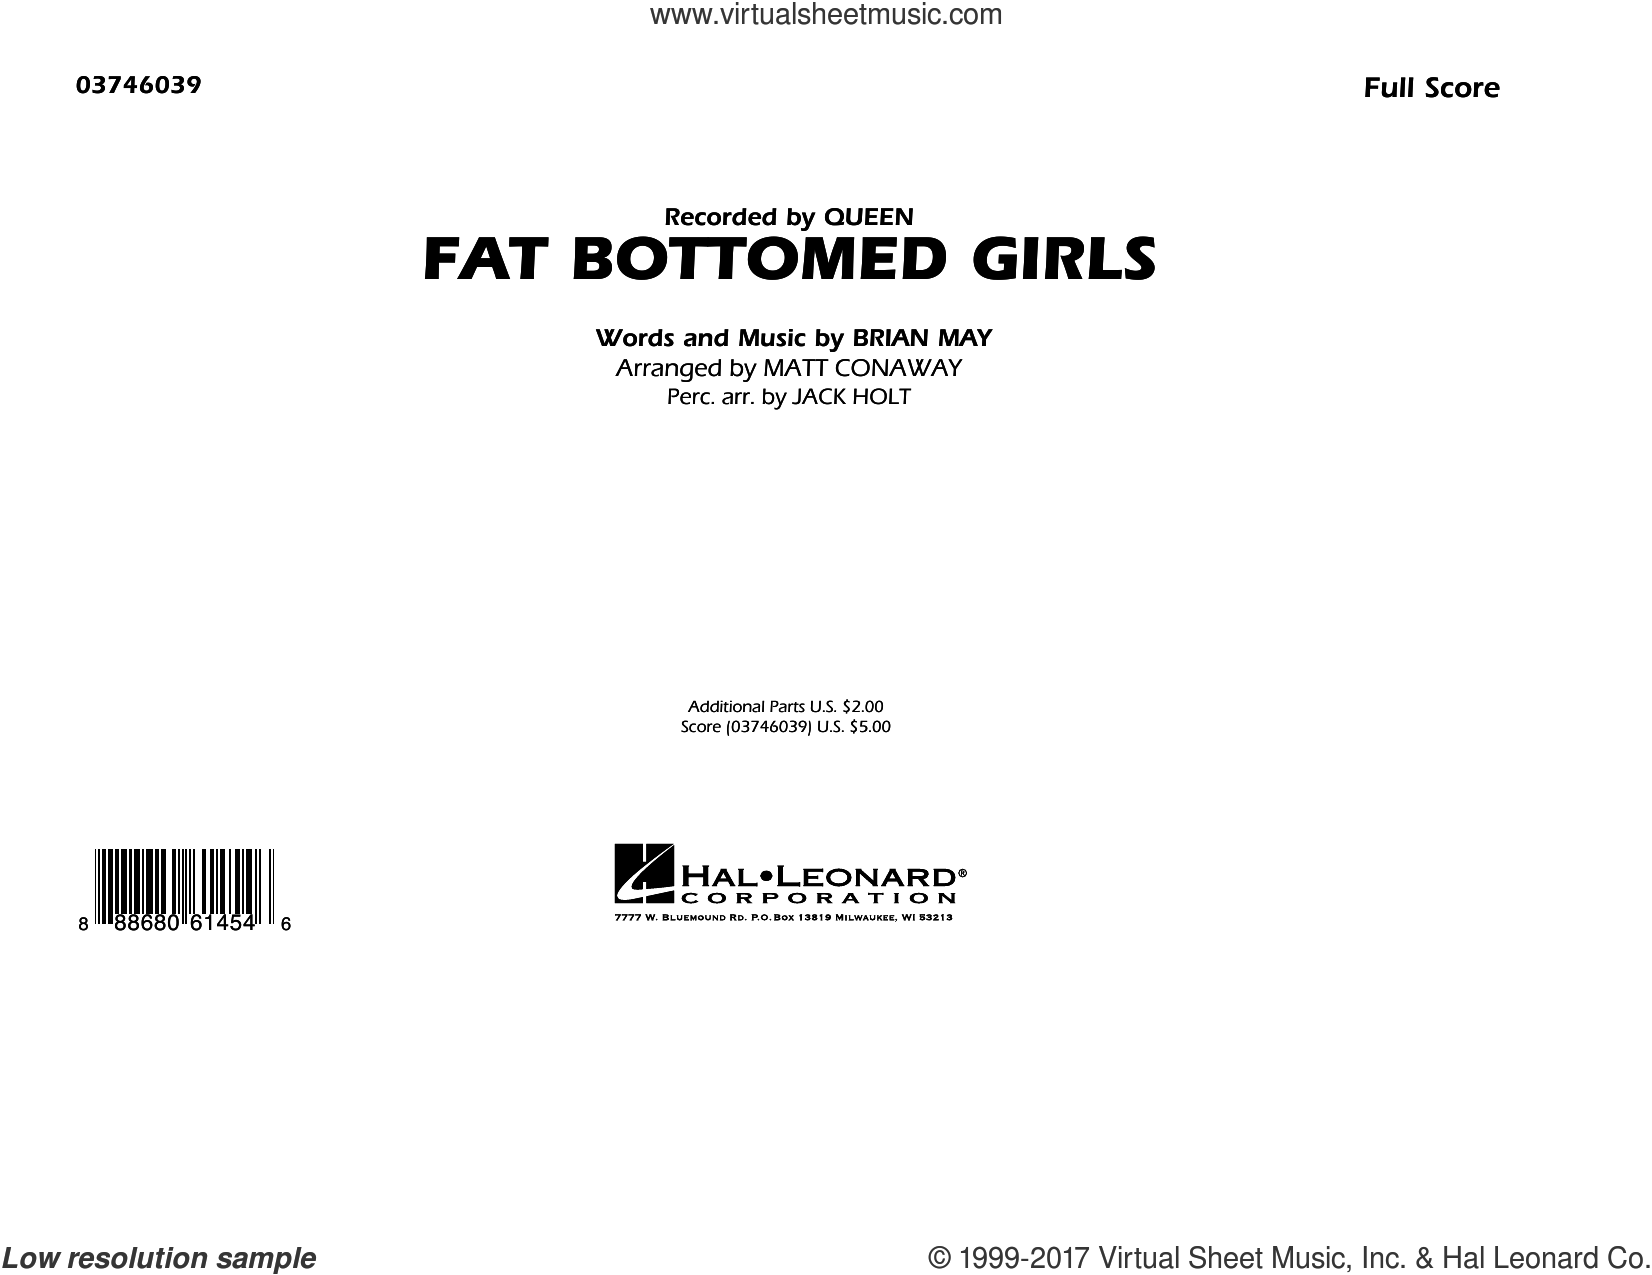 Fat Bottomed Girls (COMPLETE) sheet music for marching band by Queen, Brian May, Jack Holt and Matt Conaway, intermediate skill level